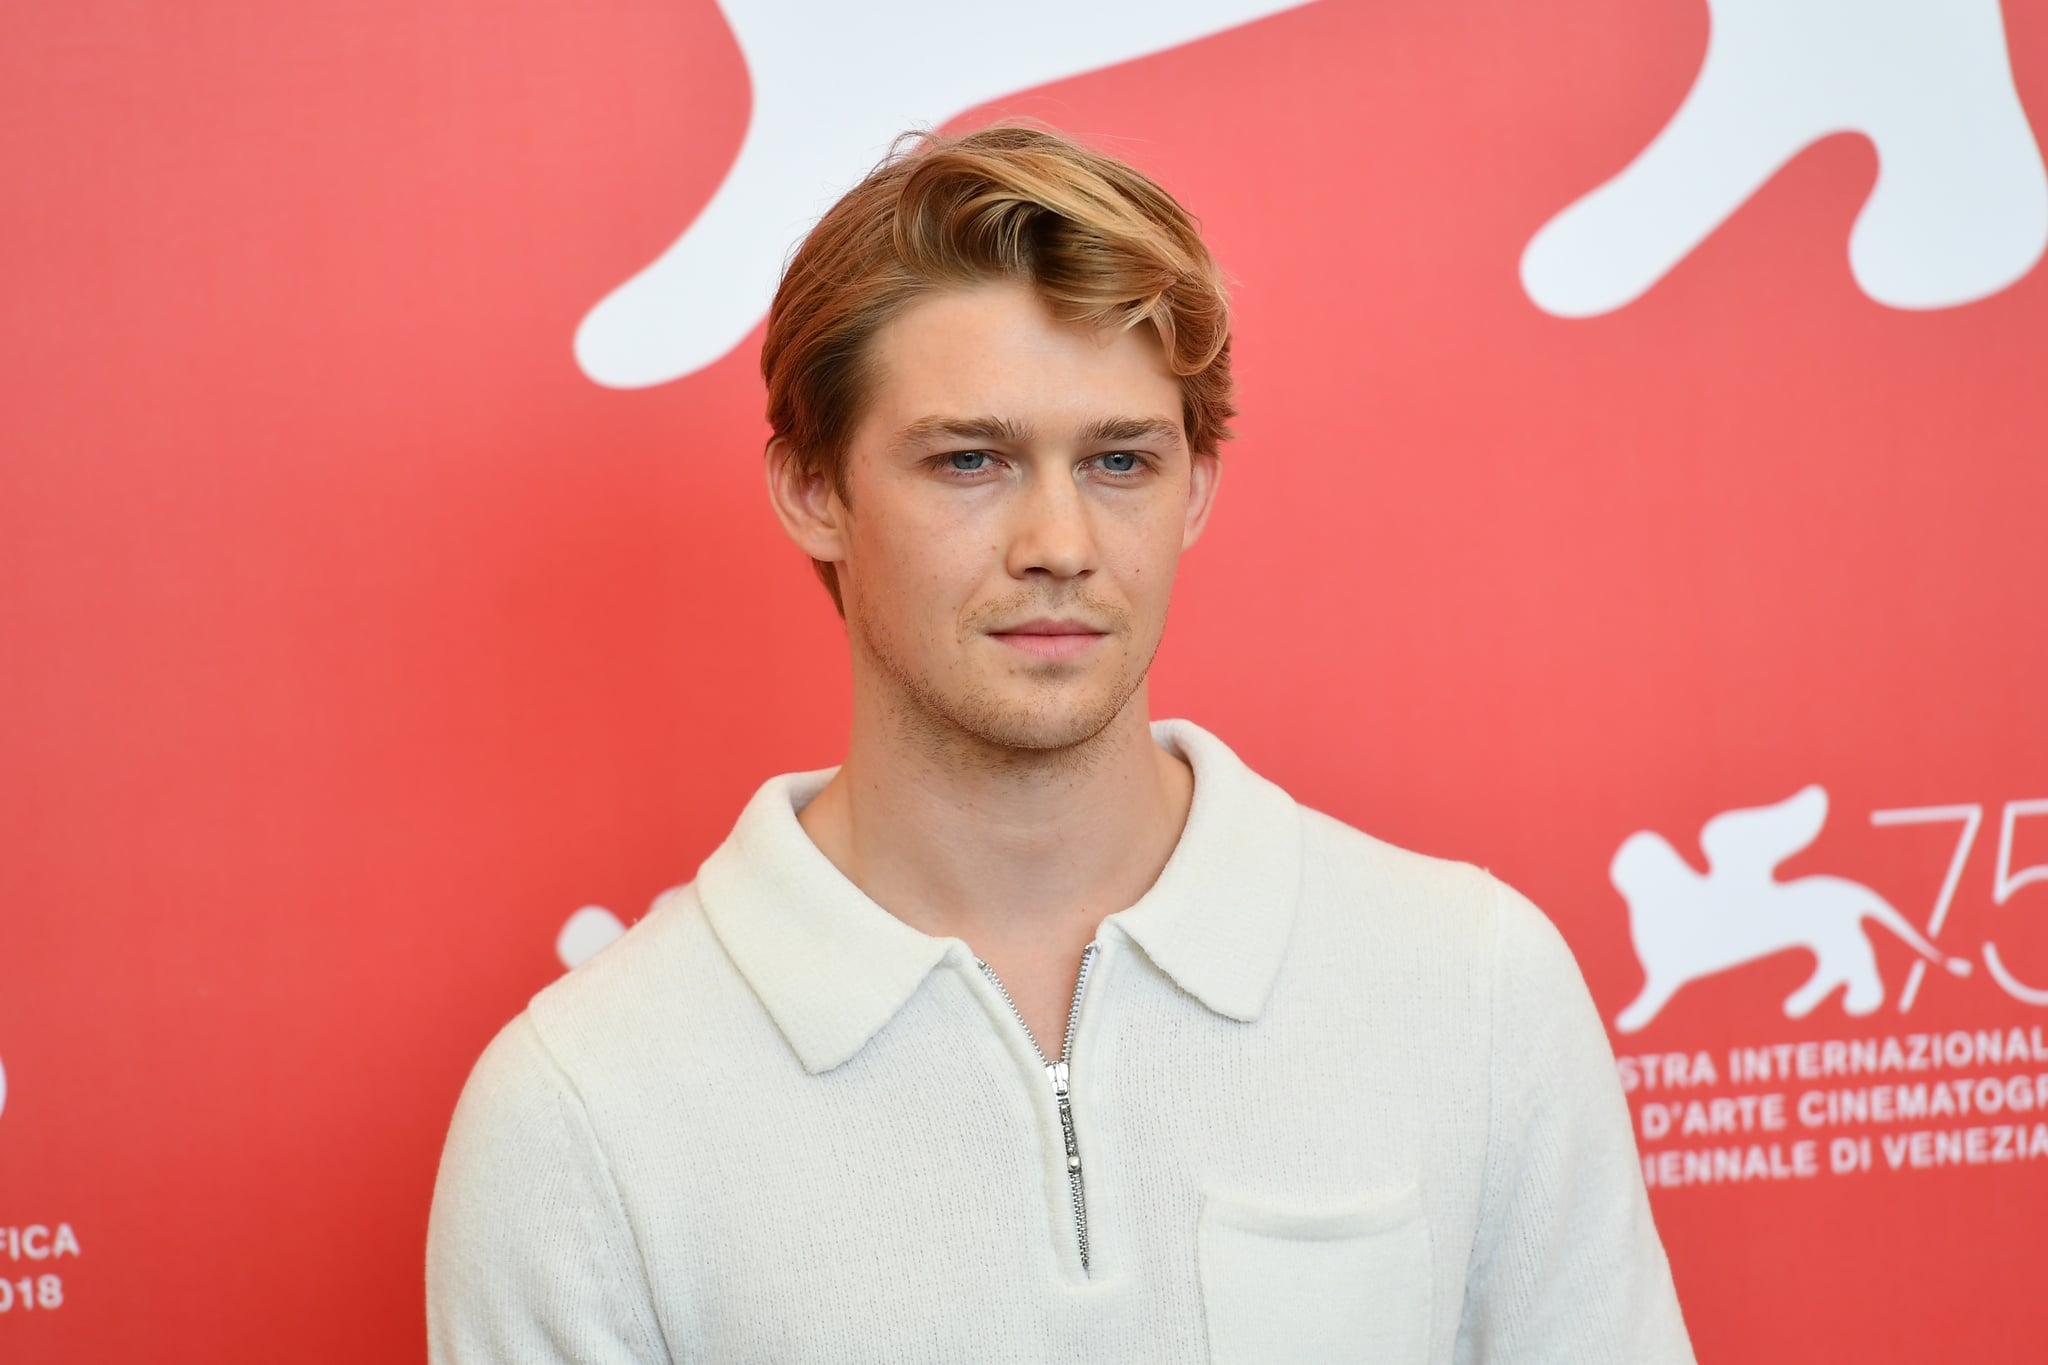 VENICE, ITALY - AUGUST 30:  Joe Alwyn  attends 'The Favourite' photocall during the 75th Venice Film Festival at Sala Casino on August 30, 2018 in Venice, Italy.  (Photo by Dominique Charriau/WireImage)